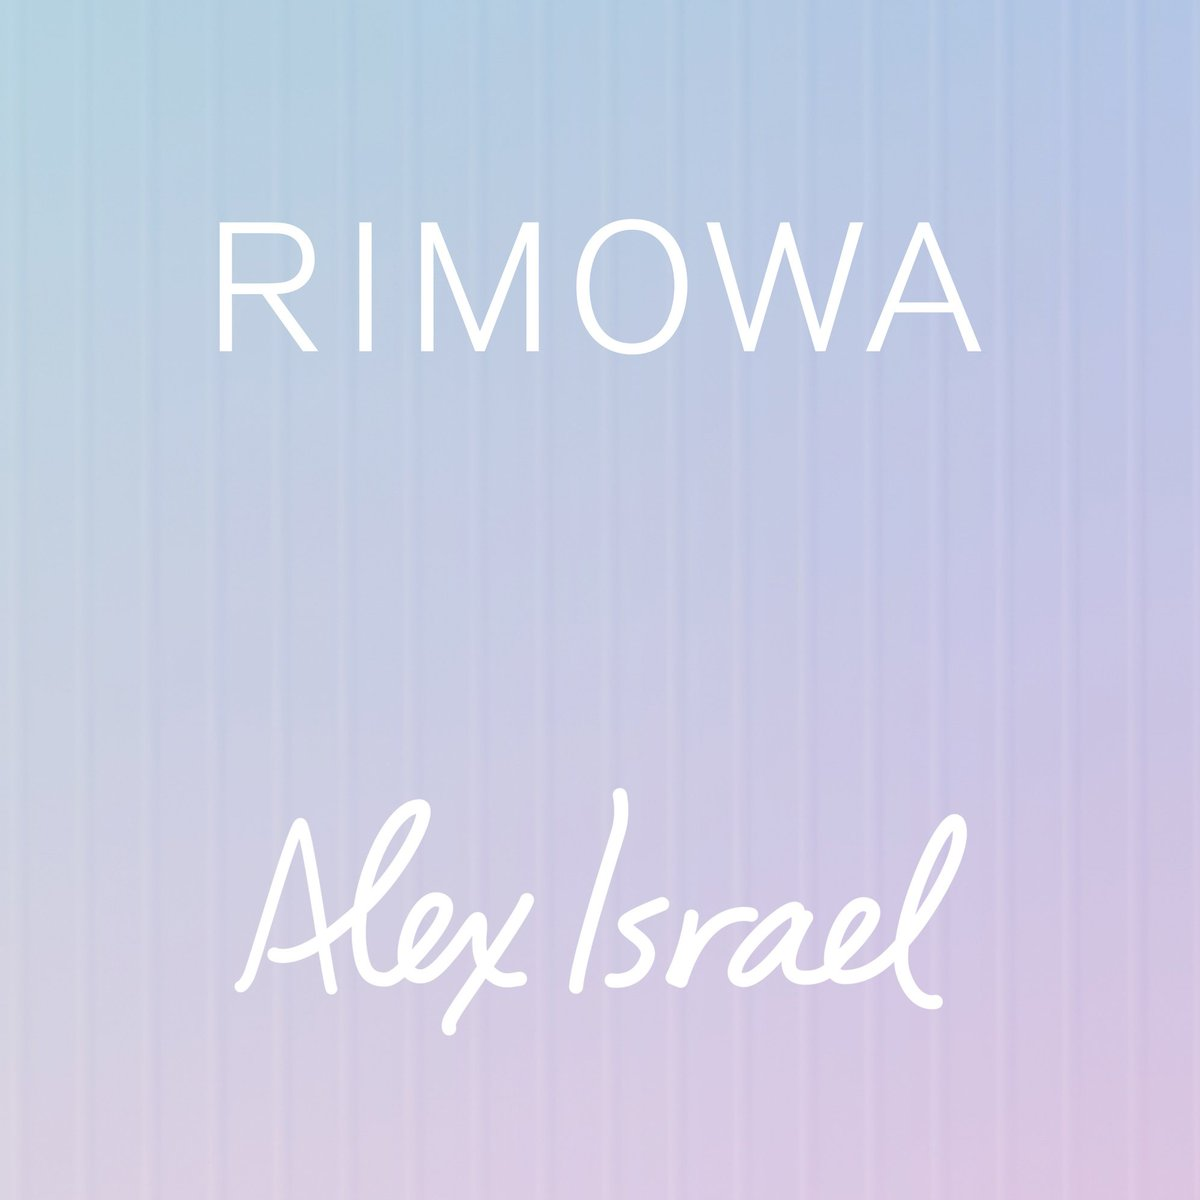 Something larger-than-life is coming to 8495 Melrose Avenue. February 14-16, 2019. #rimowaalexisrael https://t.co/Y8SvQ7a1ow